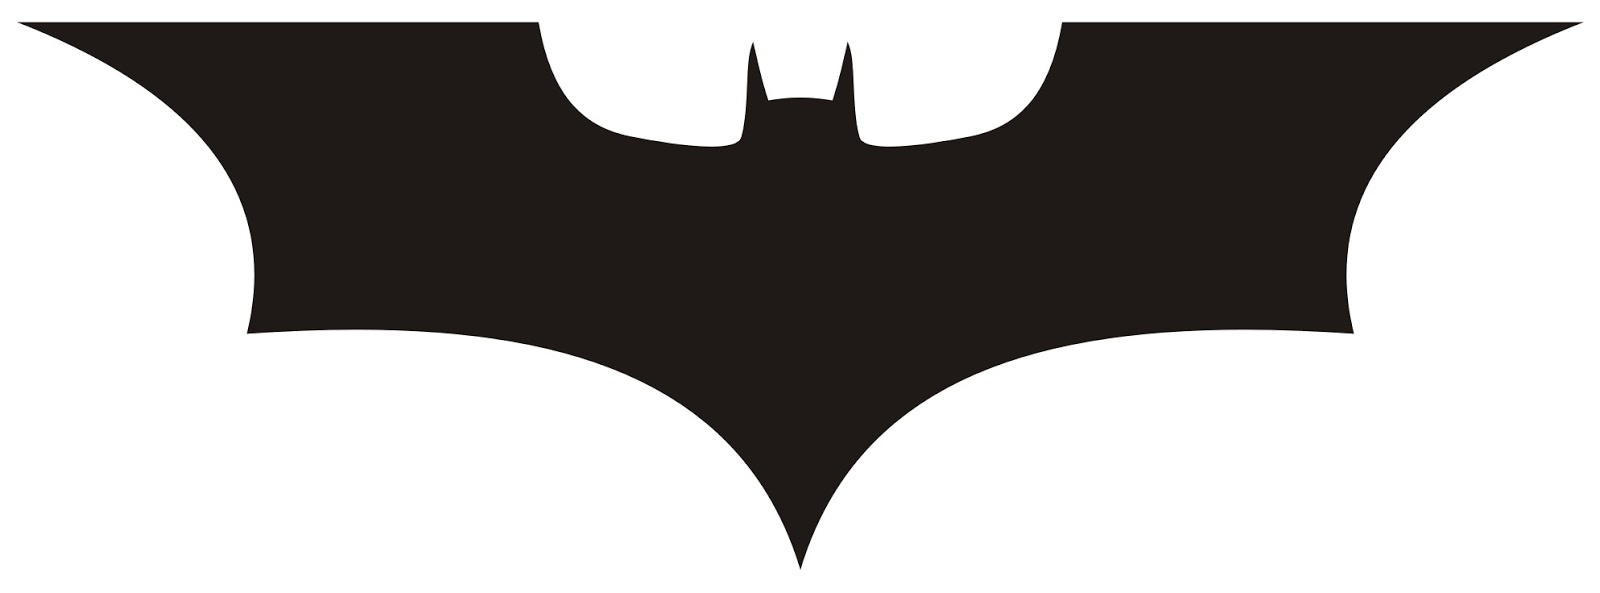 Words from the dark side the dark knight rises 2012 Batman symbol